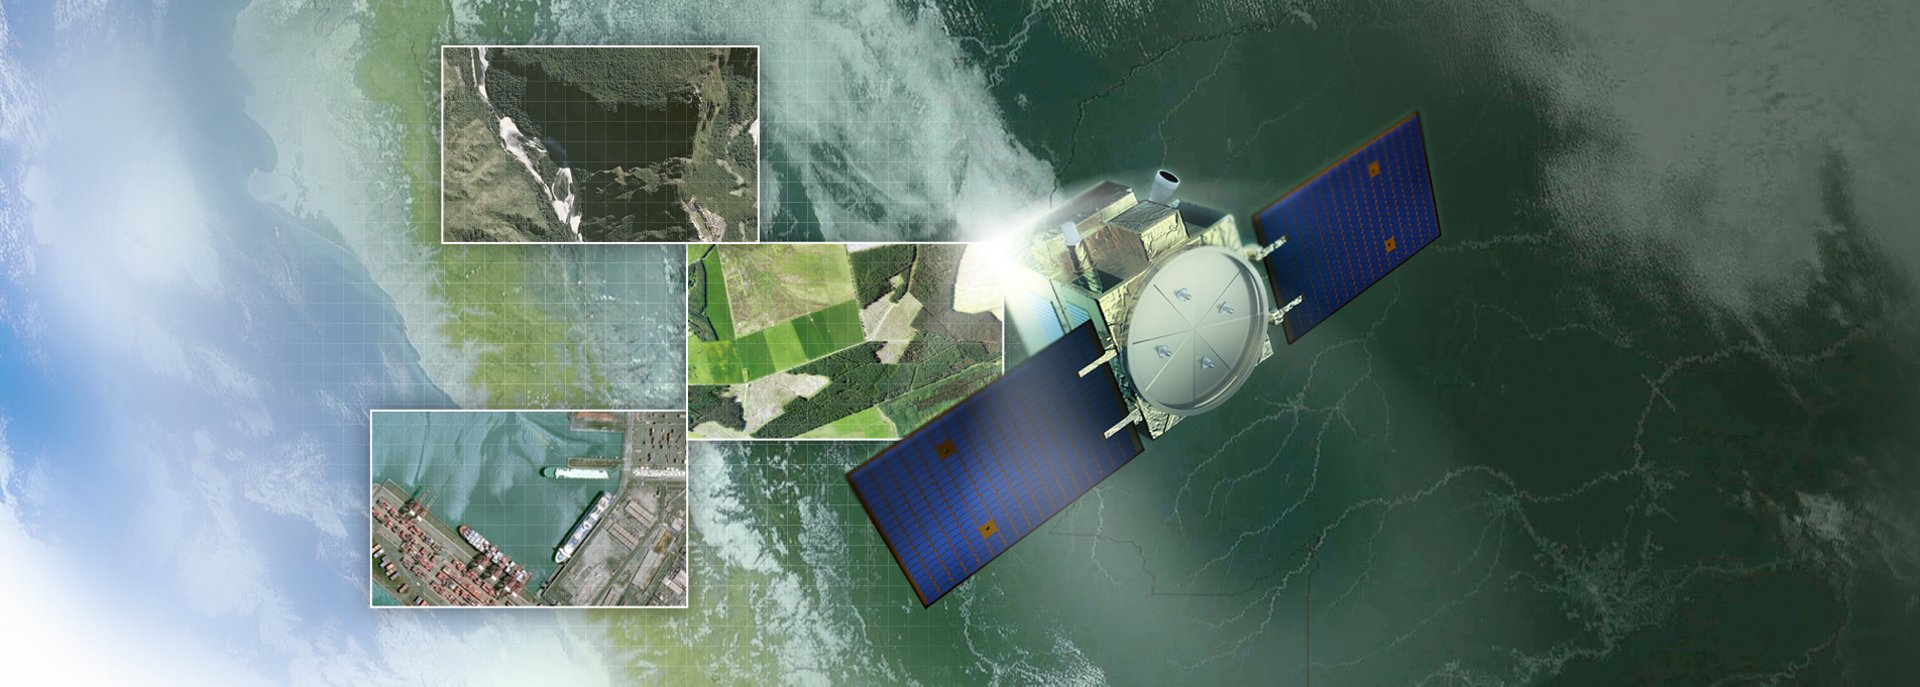 PerúSAT-1 is a very-high-resolution Earth observation satellite system built for the government and Space Agency of Peru. This satellite is the first of its kind operated by Peru and was launched in September 2016.